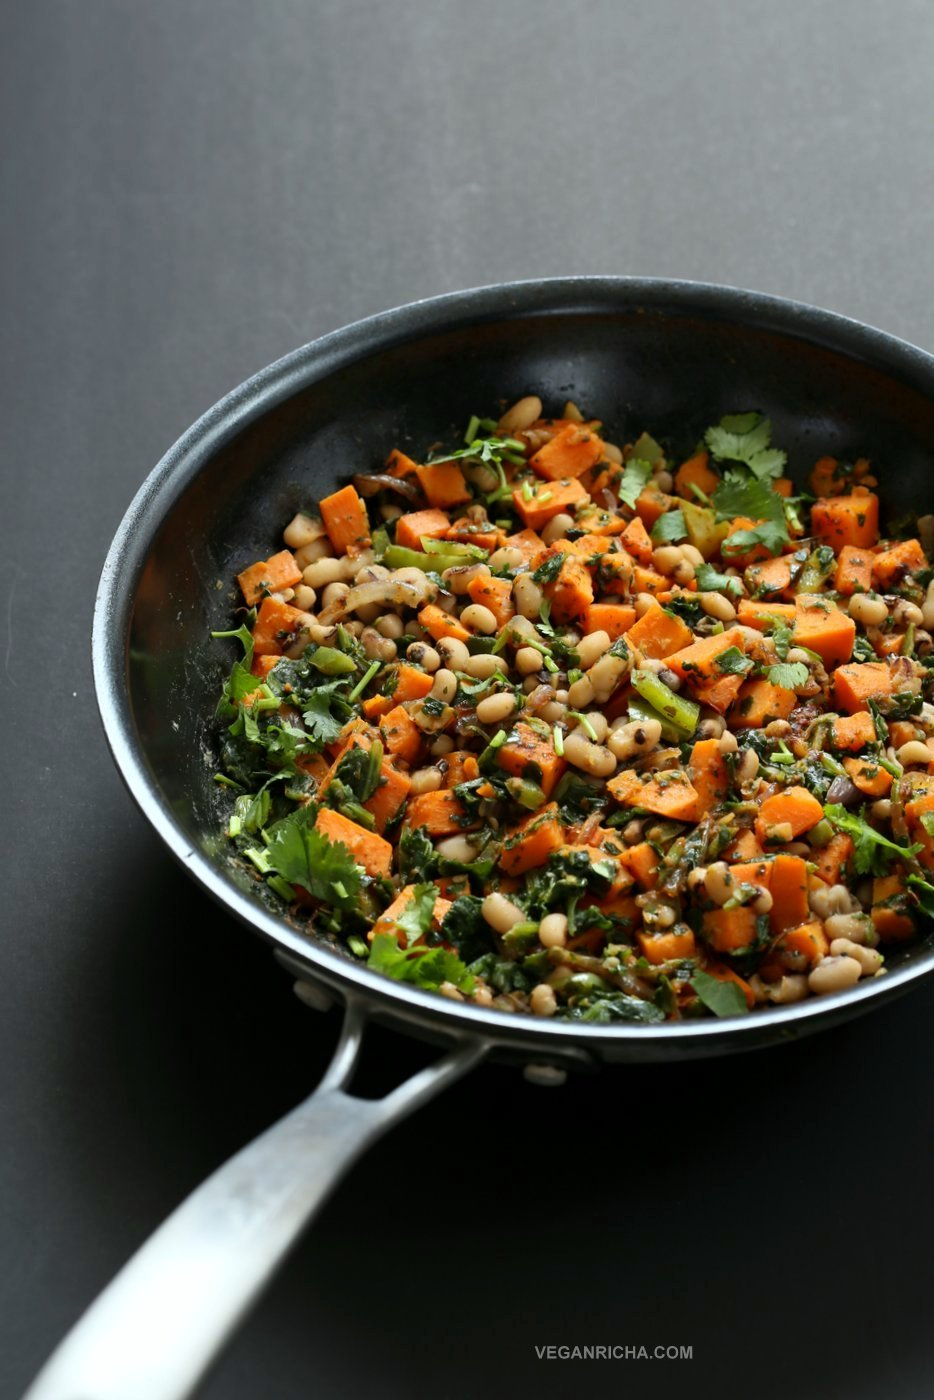 Bring in the new year with this plentiful Black eyed pea and Sweet Potato Hash with Harissa Spice. Ready in 20 minutes. Serve over toast with a creamy dressing or avocado. #Vegan #Glutenfree #Soyfree #Recipe #veganricha | VeganRicha.com